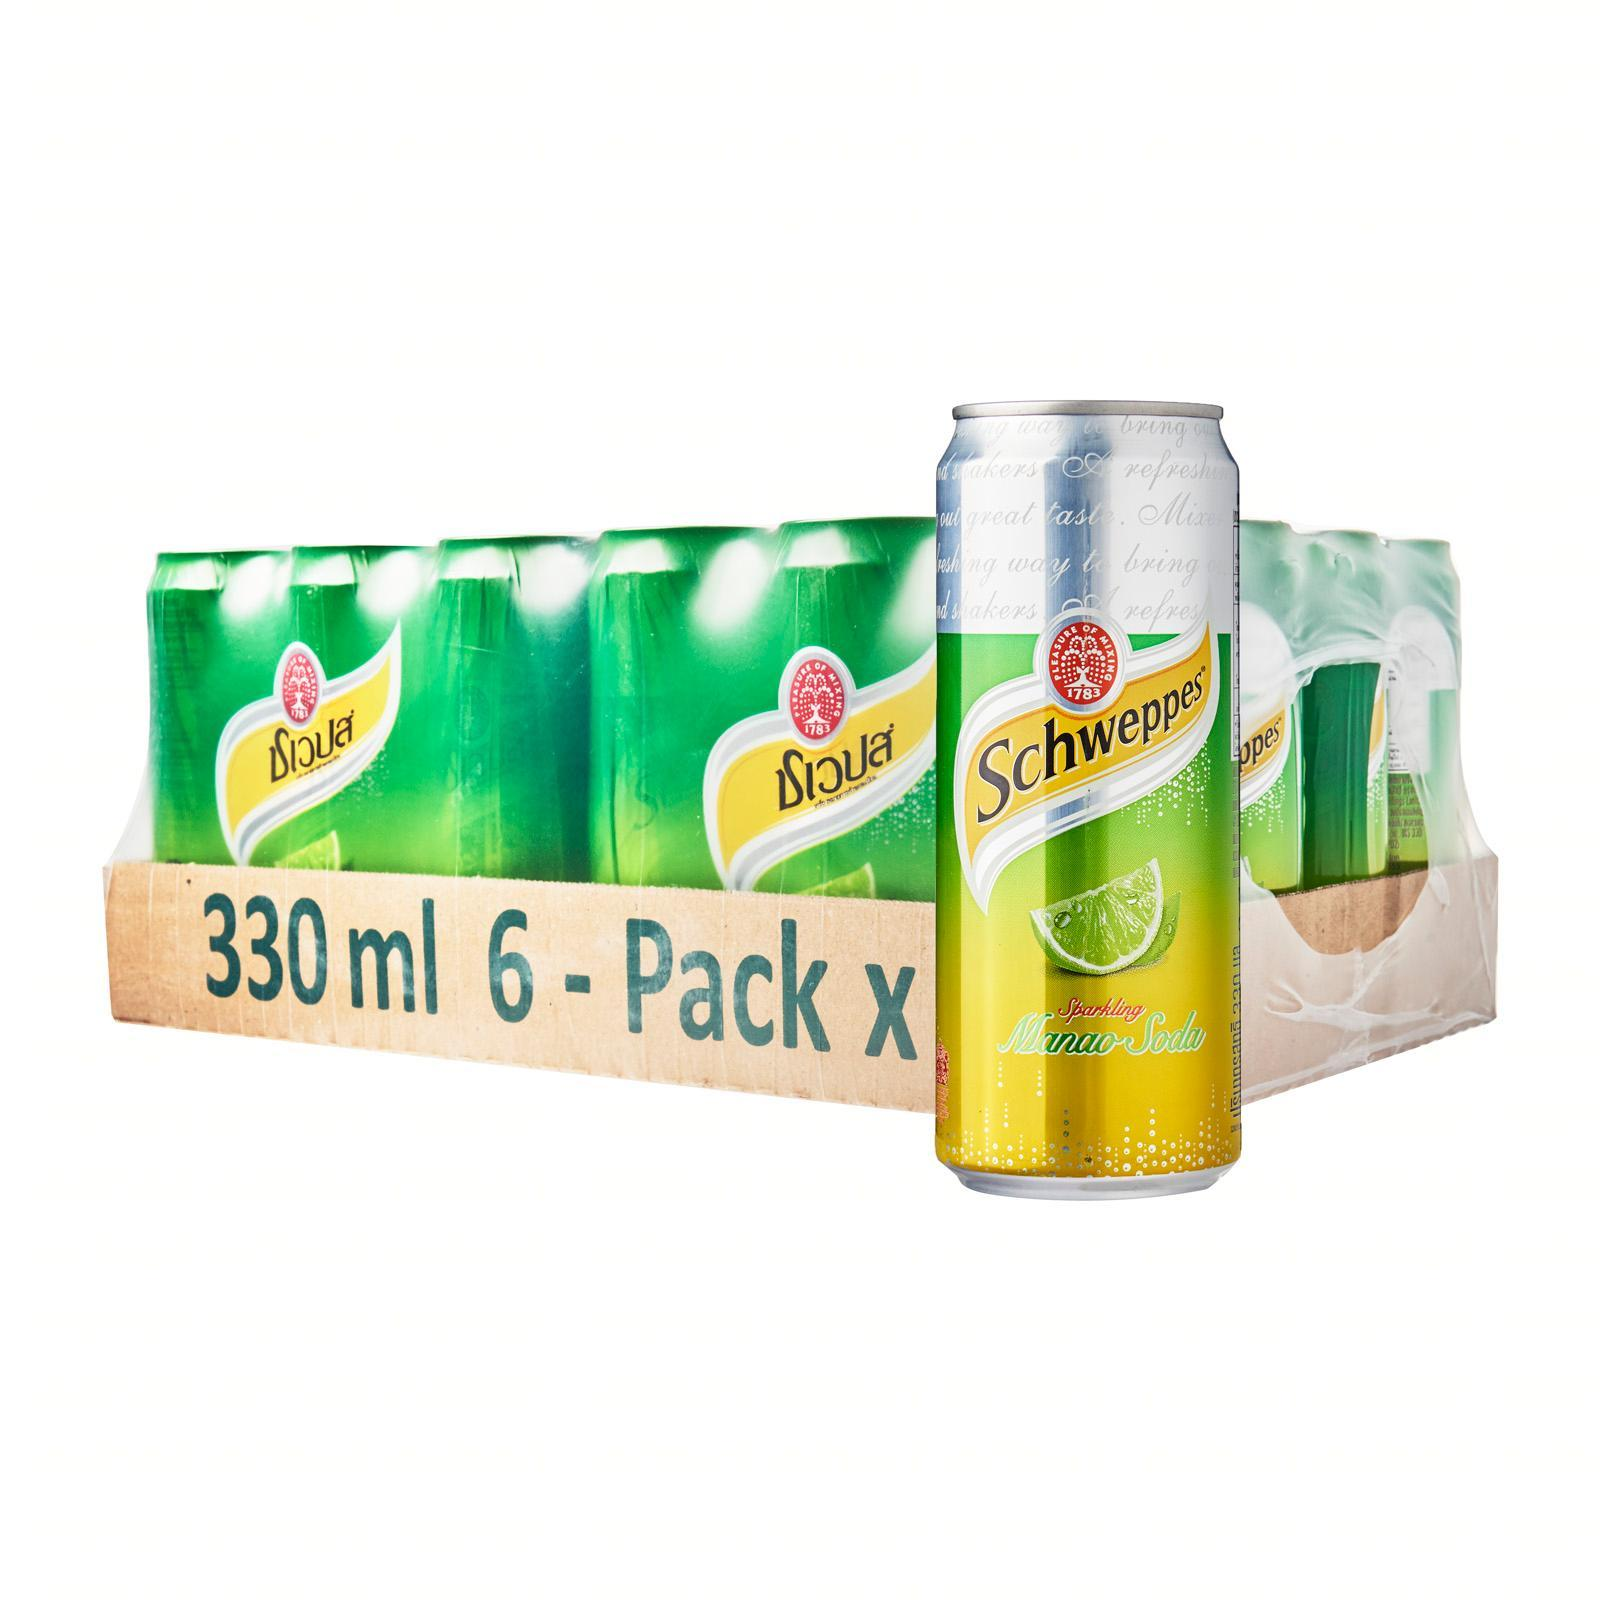 Schweppes Schweppes Manao Lime Sparkling Soda - 24 Cans - Case